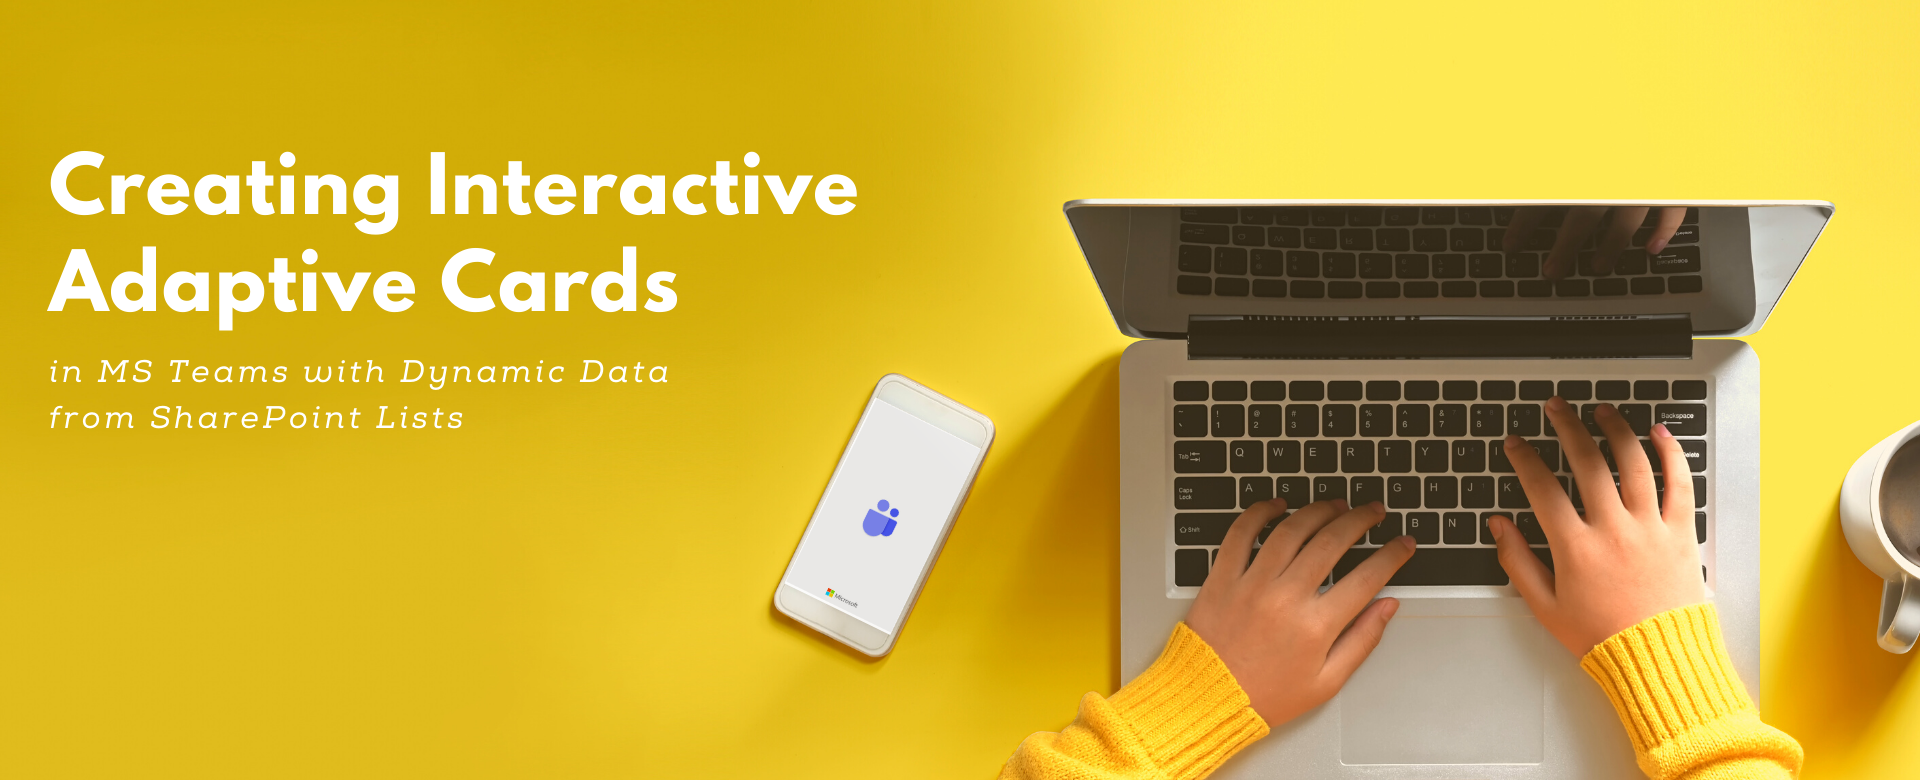 Creating interactive adaptive cards in MS Teams with dynamic data from SharePoint Lists